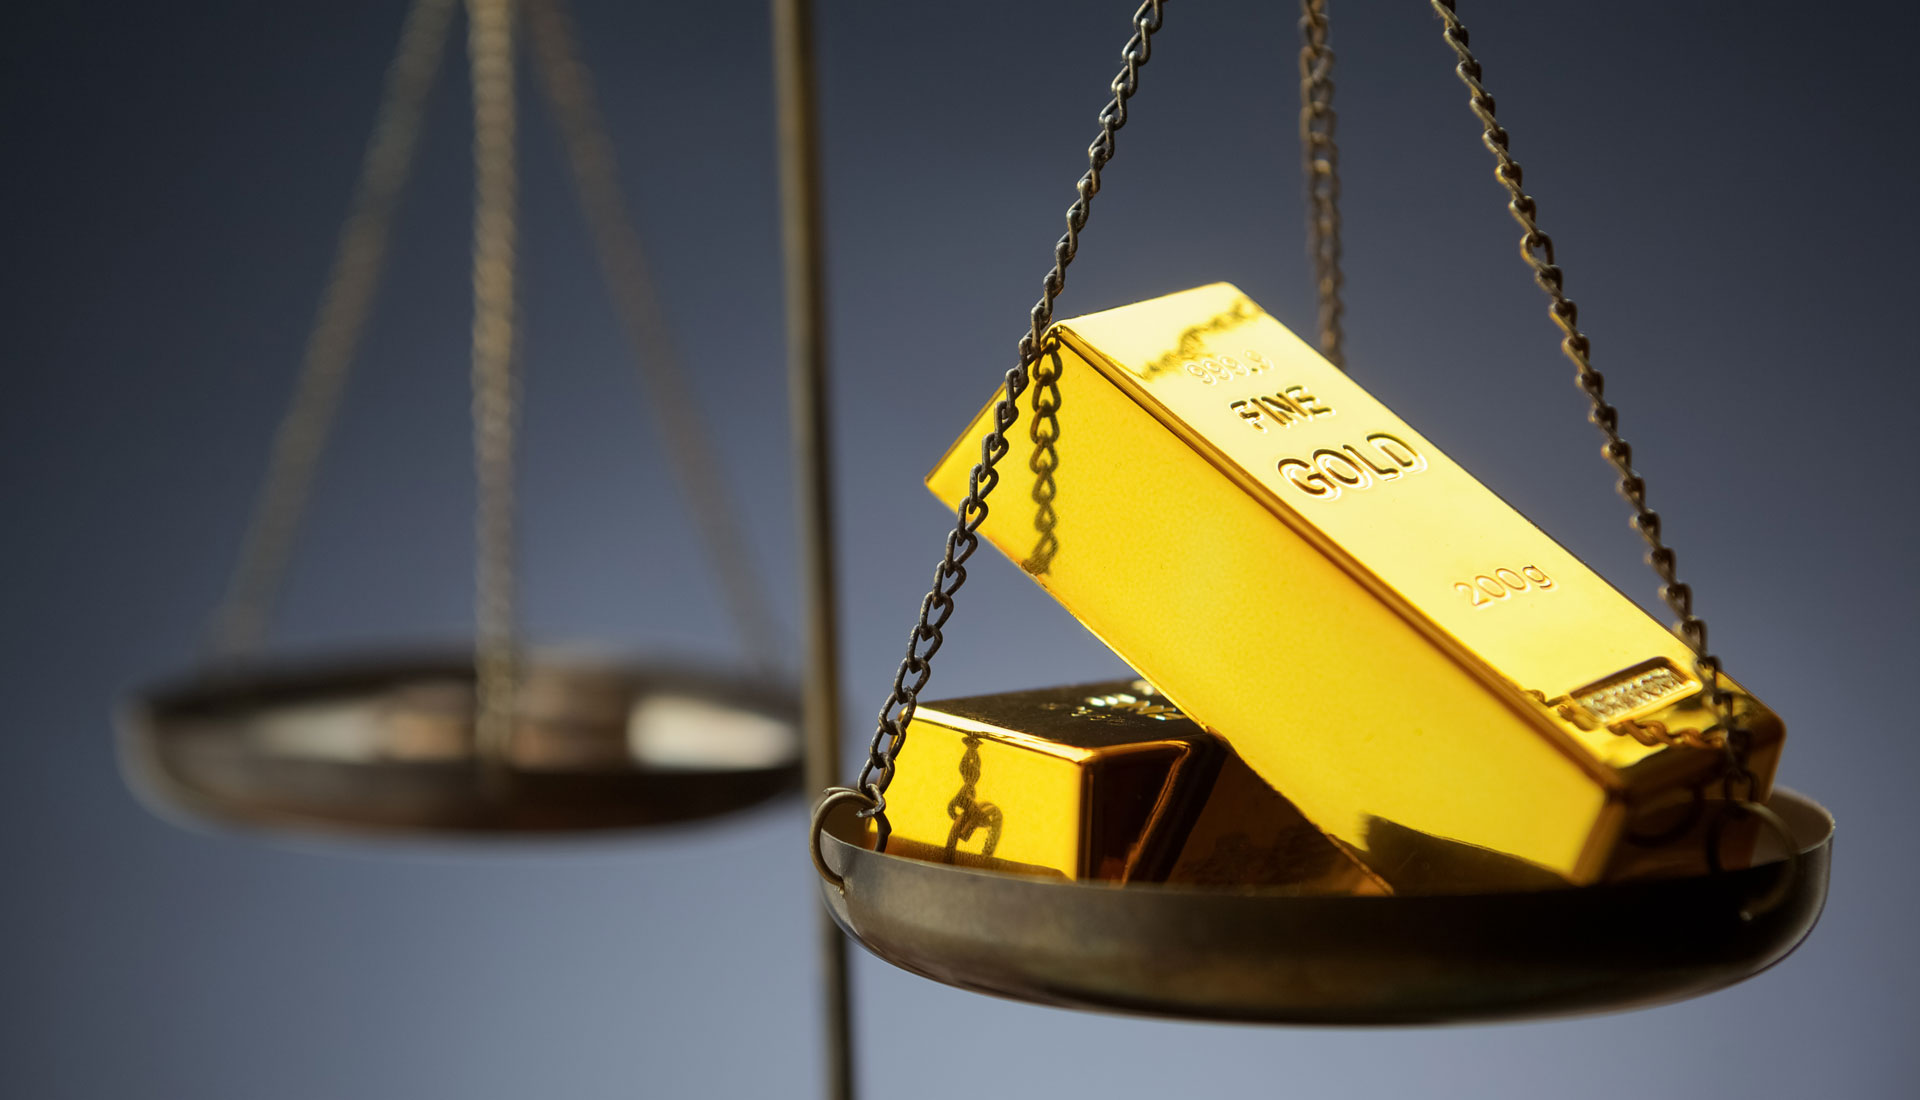 Should Gold Be Part Of Your Investment (Gold Investment) ?